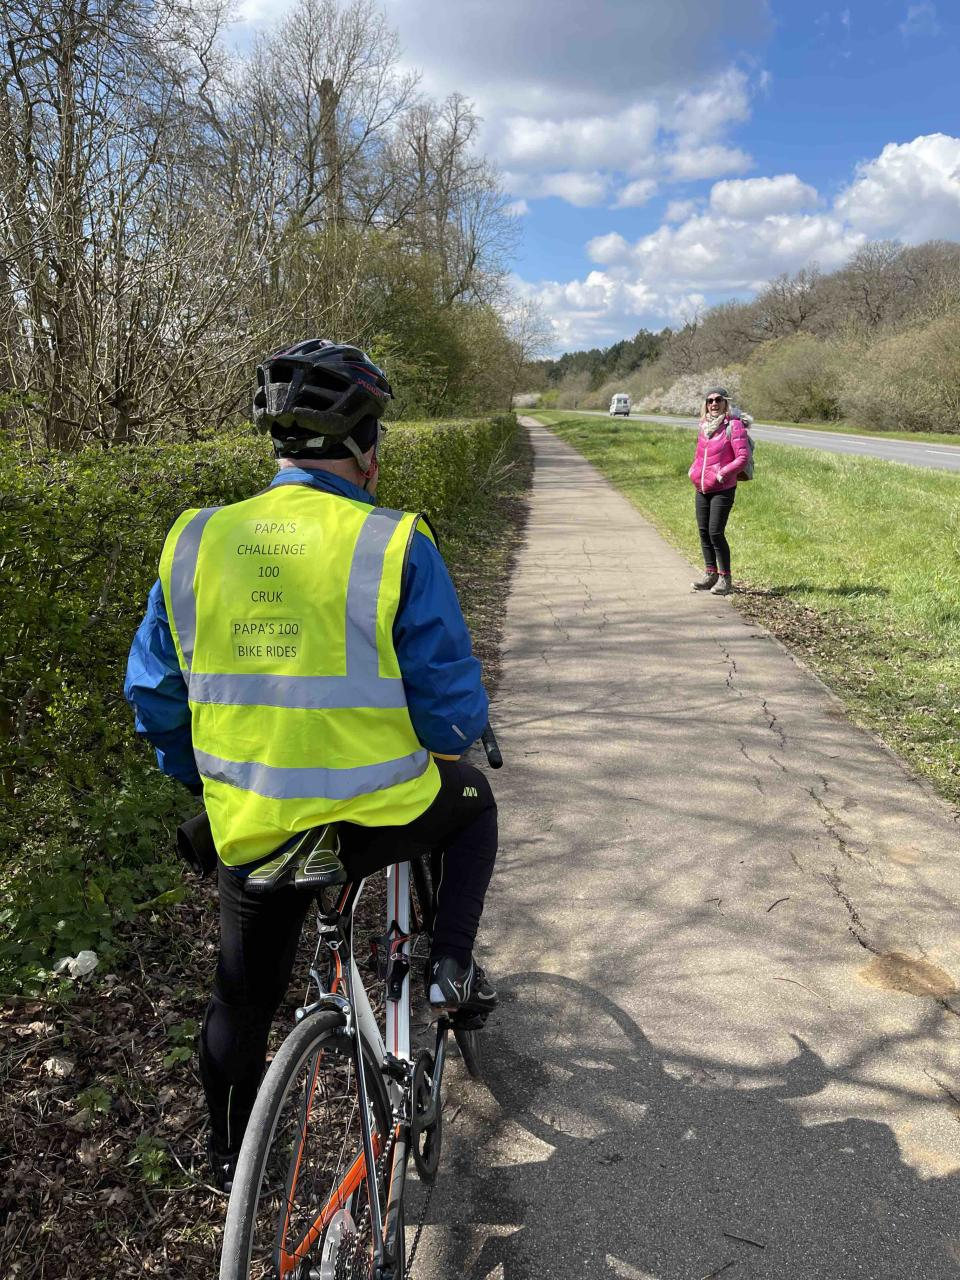 Frank McEwan has cycled around Rutland Water for years